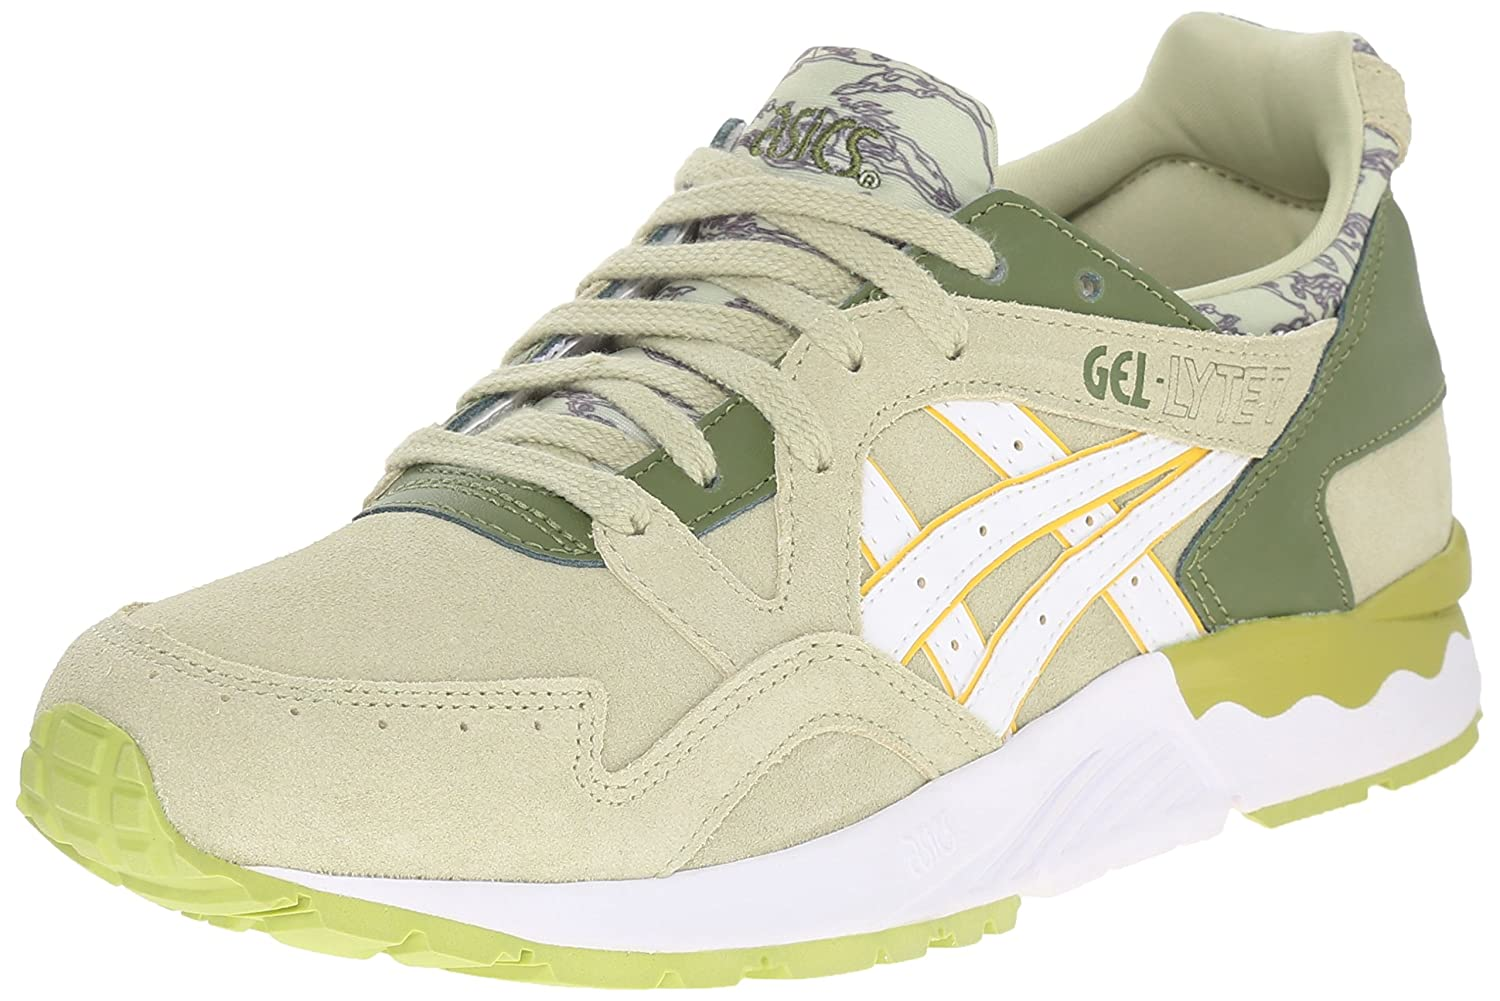 ASICS Women's Gel-Lyte V Retro Running Shoe B00ZQA1JVI 7 B(M) US|Winter Pear/White